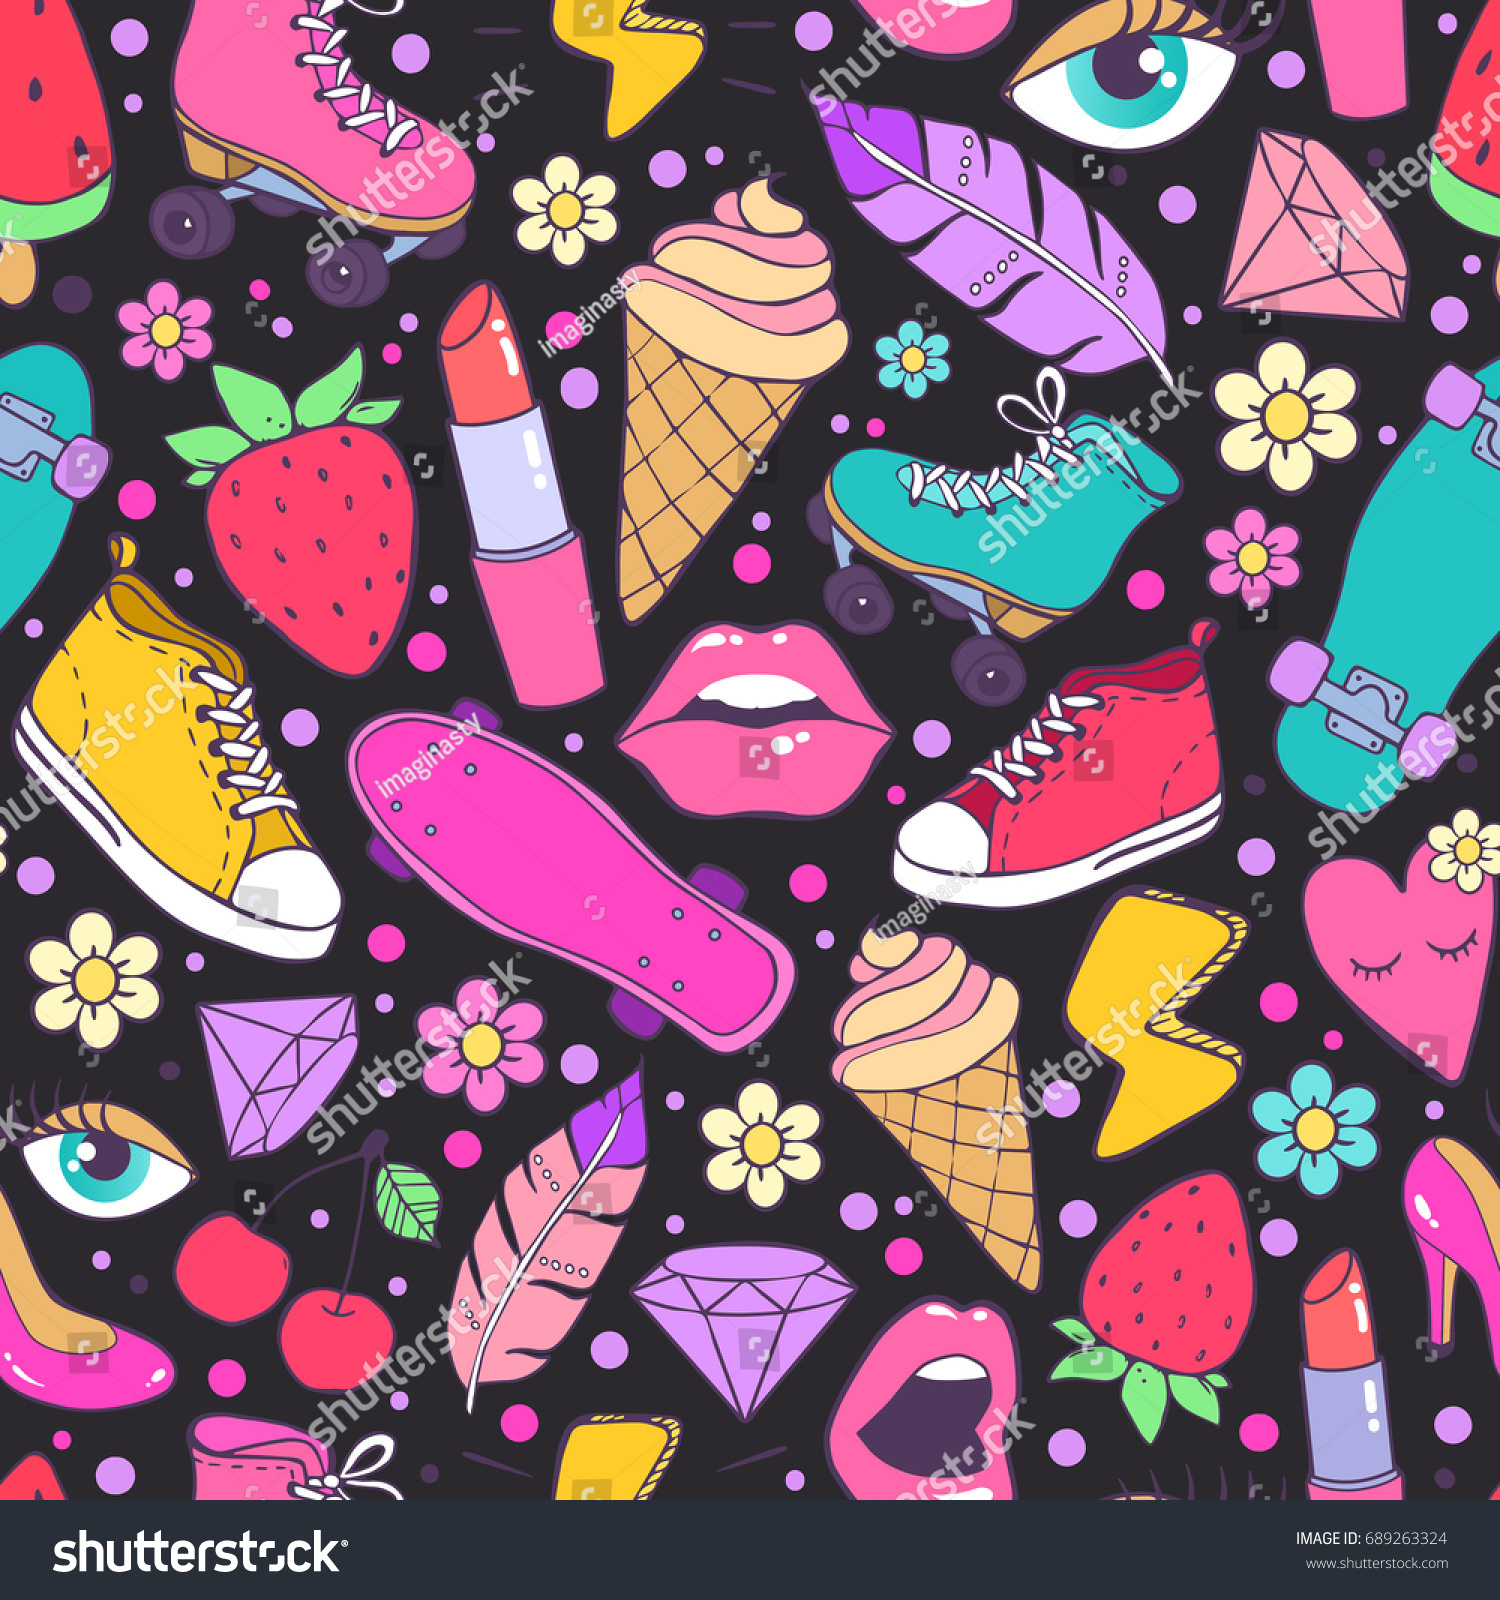 Cool bright and colorful trendy pattern. Fashion background on black with funny  teen's stuff: